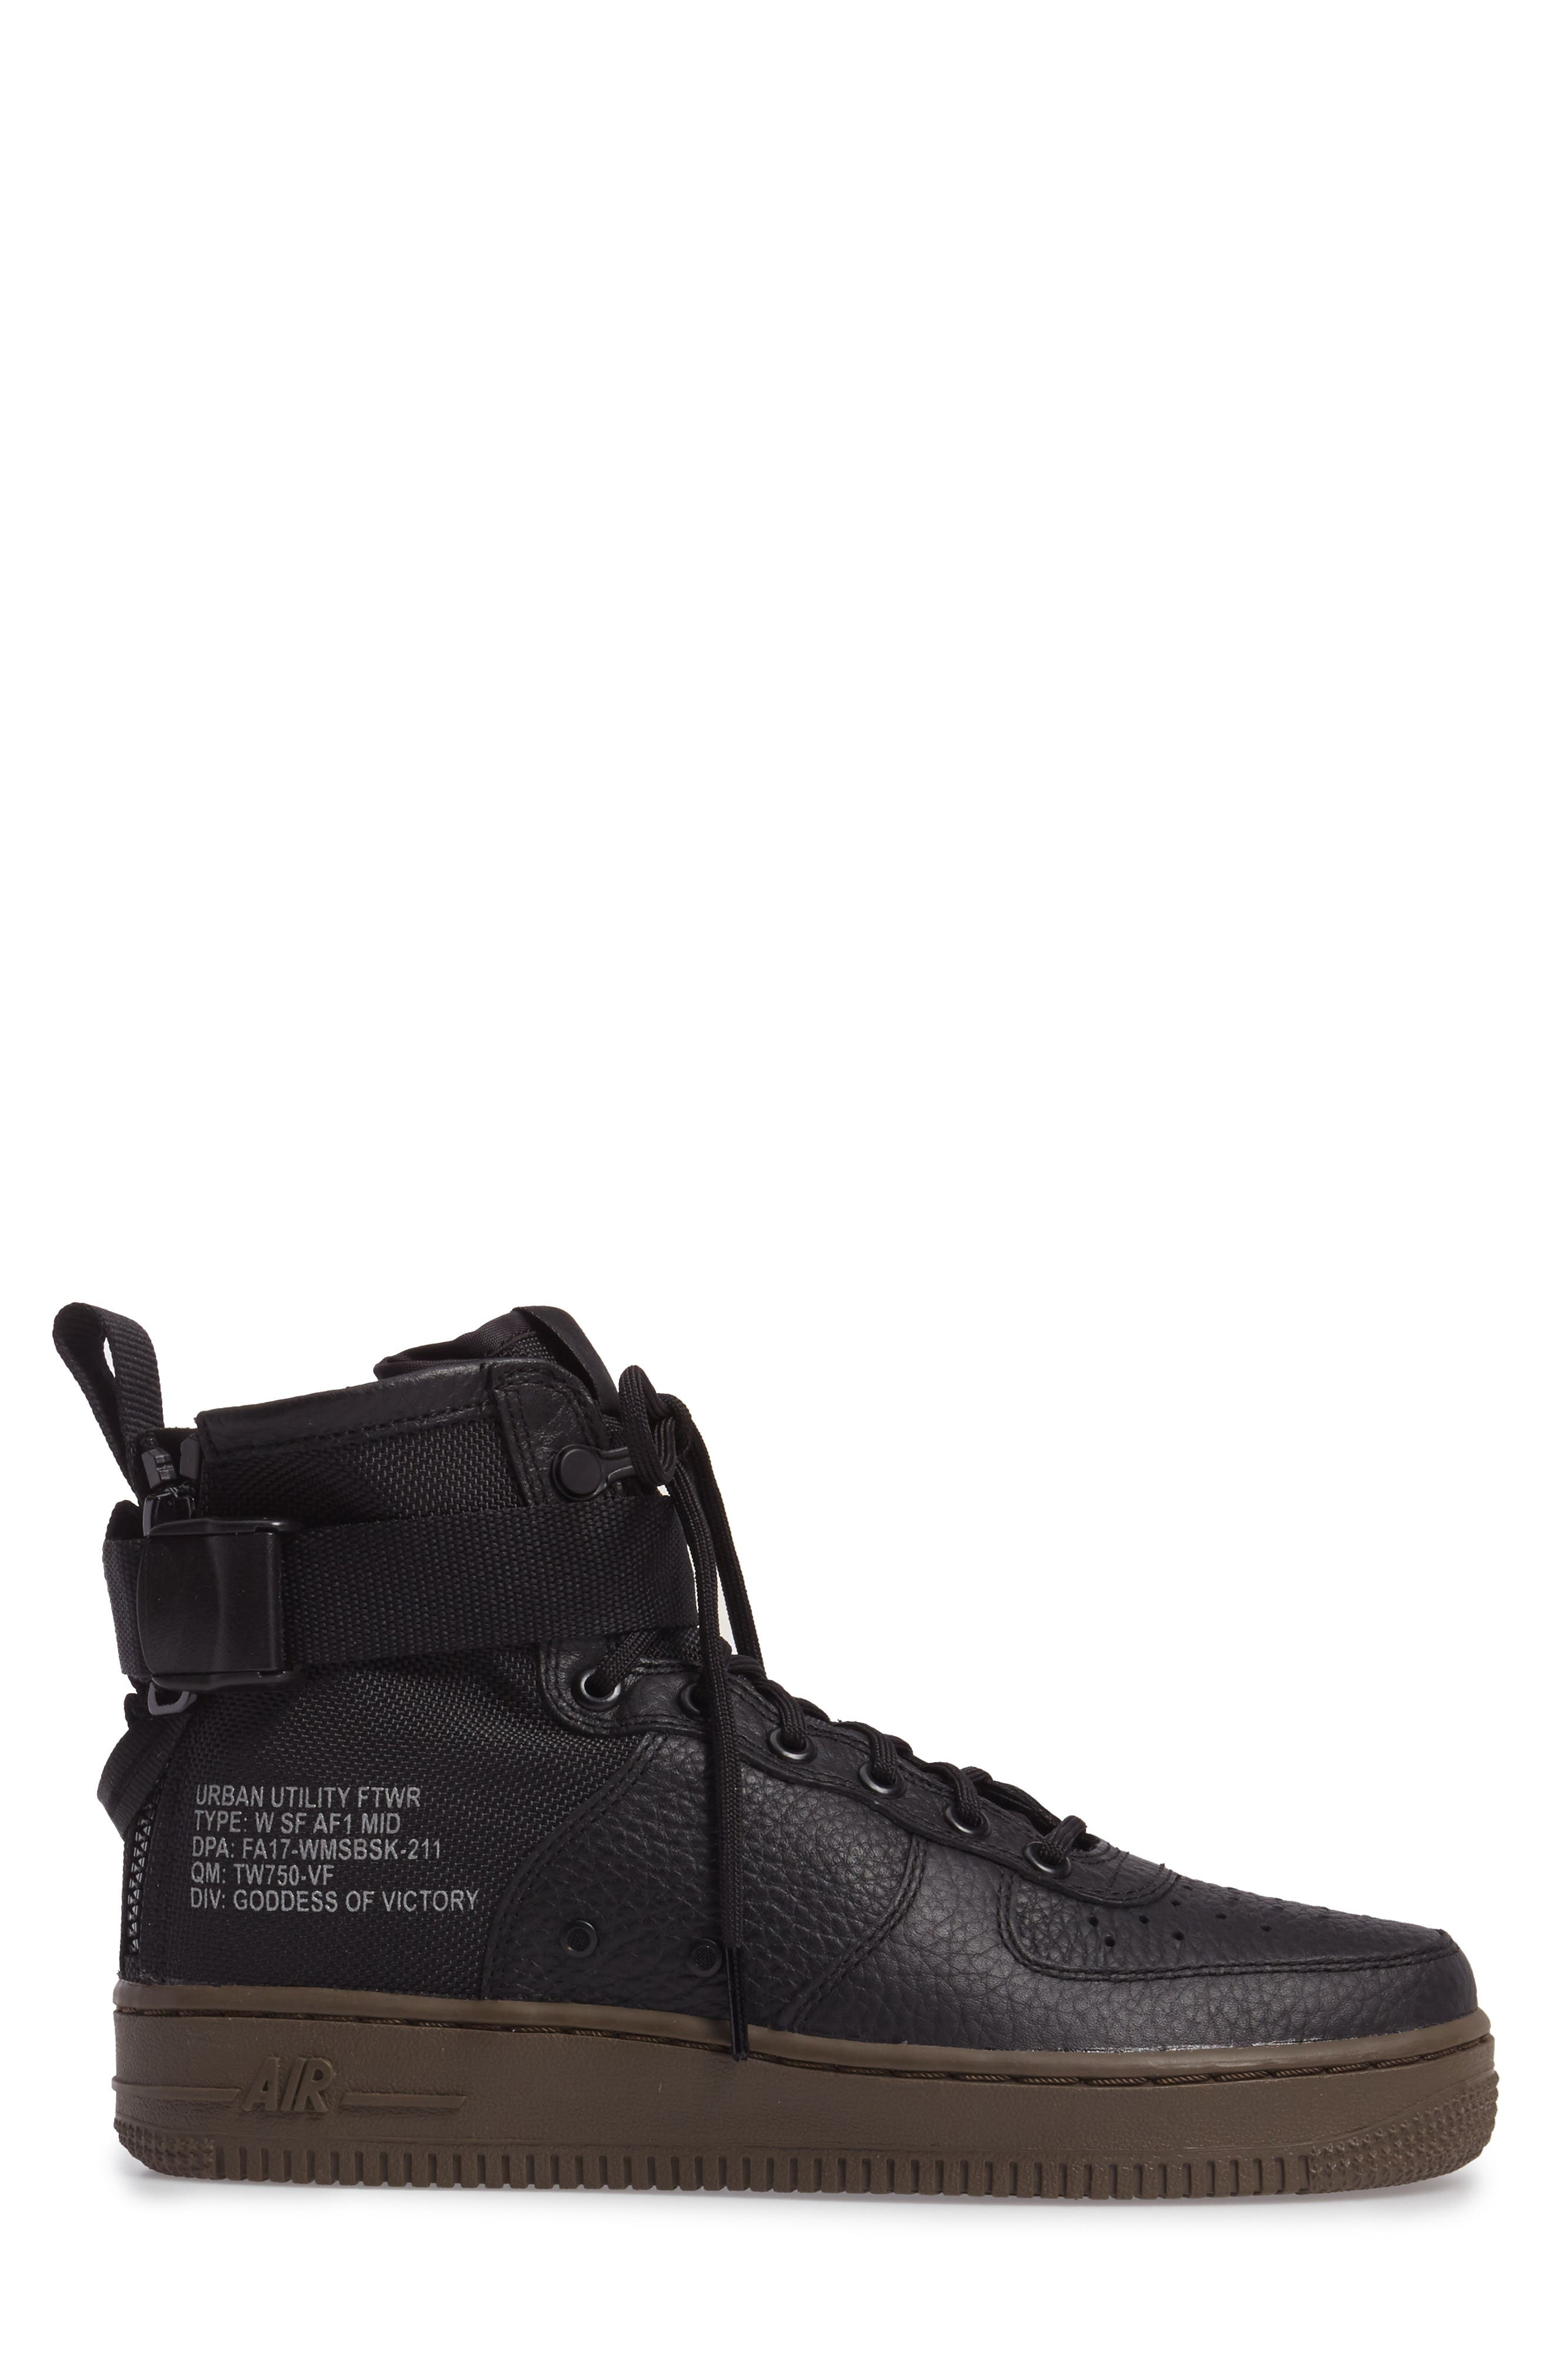 SF Air Force 1 Mid Sneaker,                             Alternate thumbnail 3, color,                             003